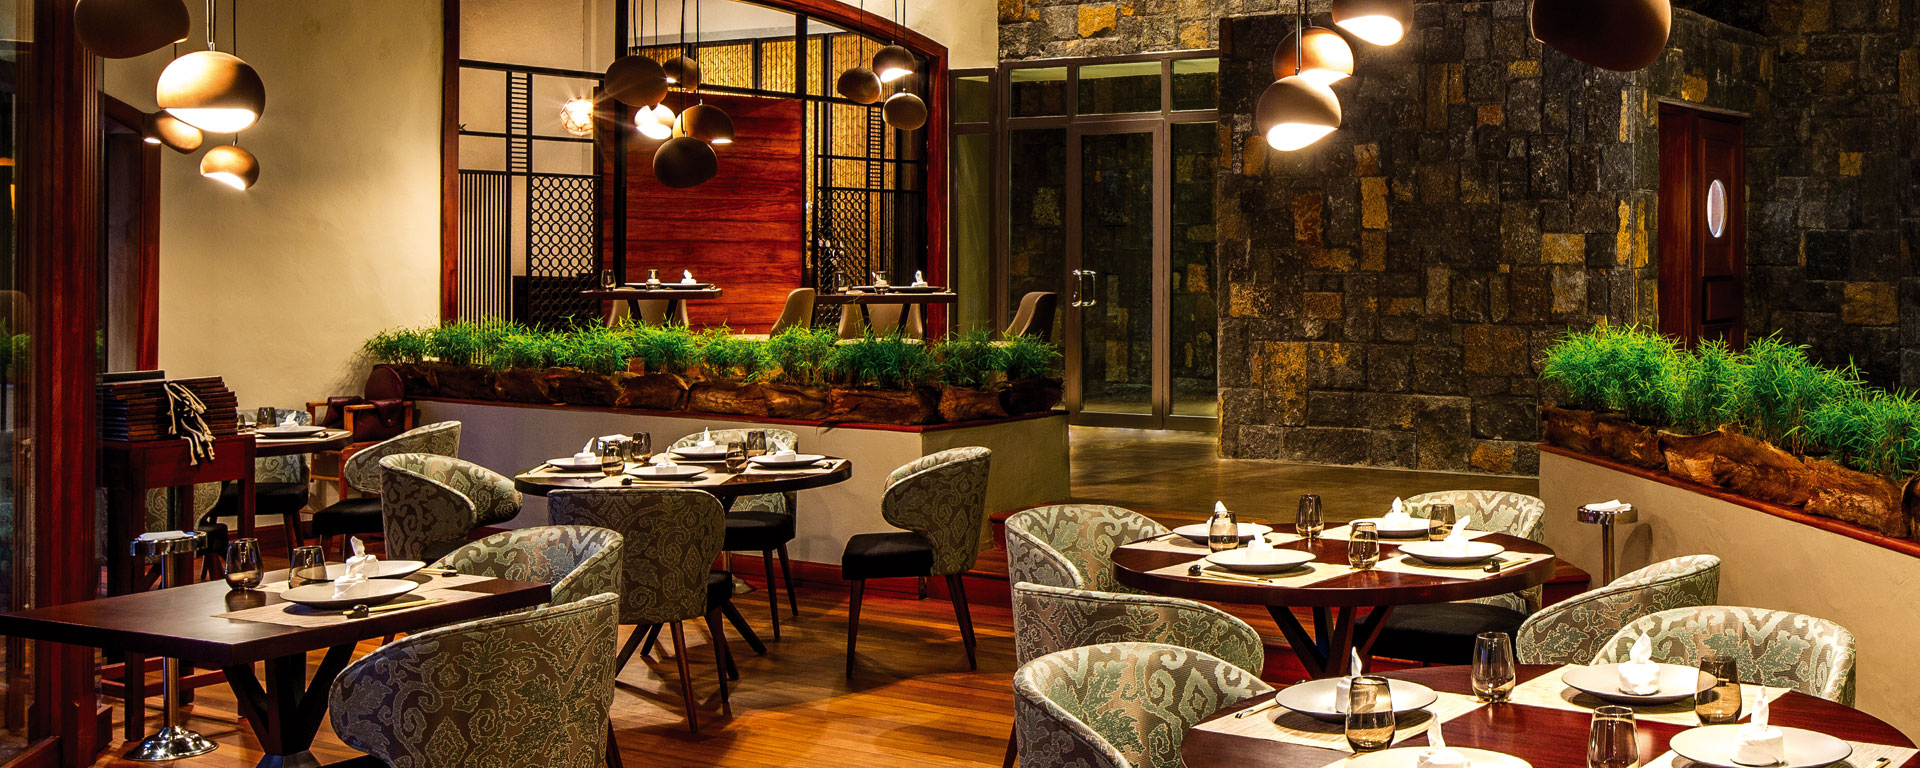 Four world-class restaurants that explore cuisines of the world